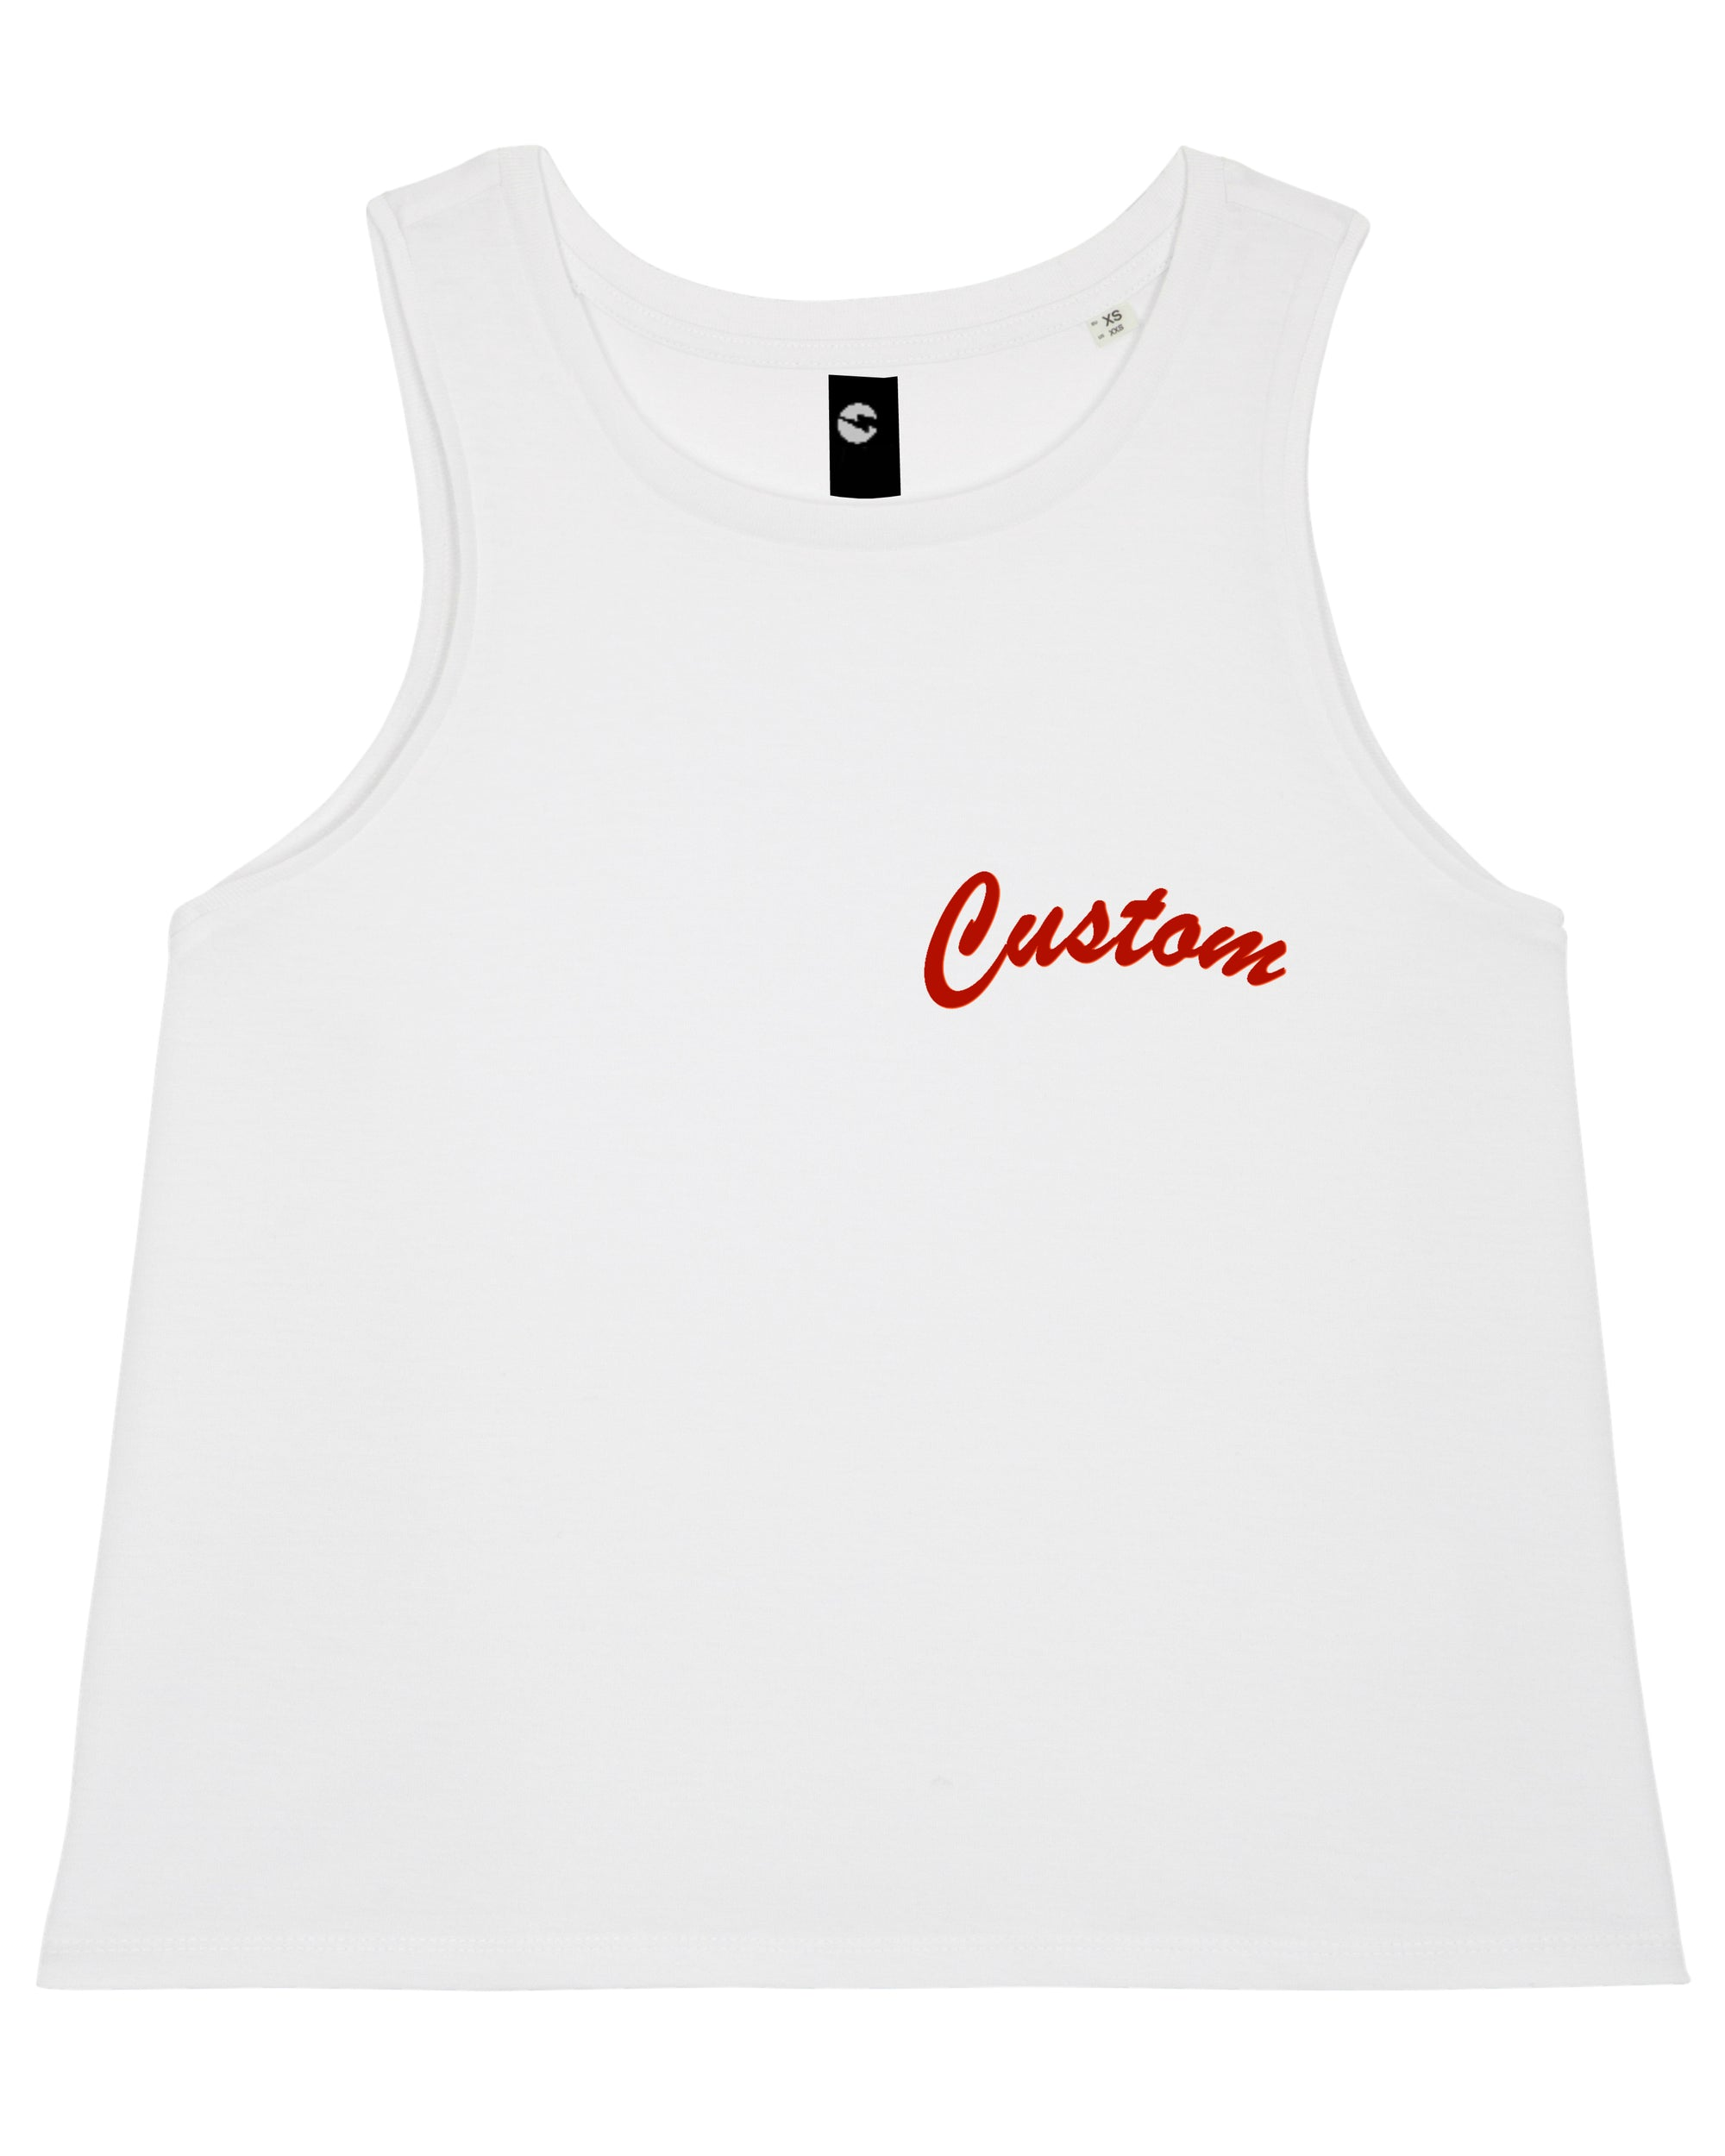 WOMEN'S CROPPED ORGANIC COTTON TANK TOP - customisable left chest embroidery